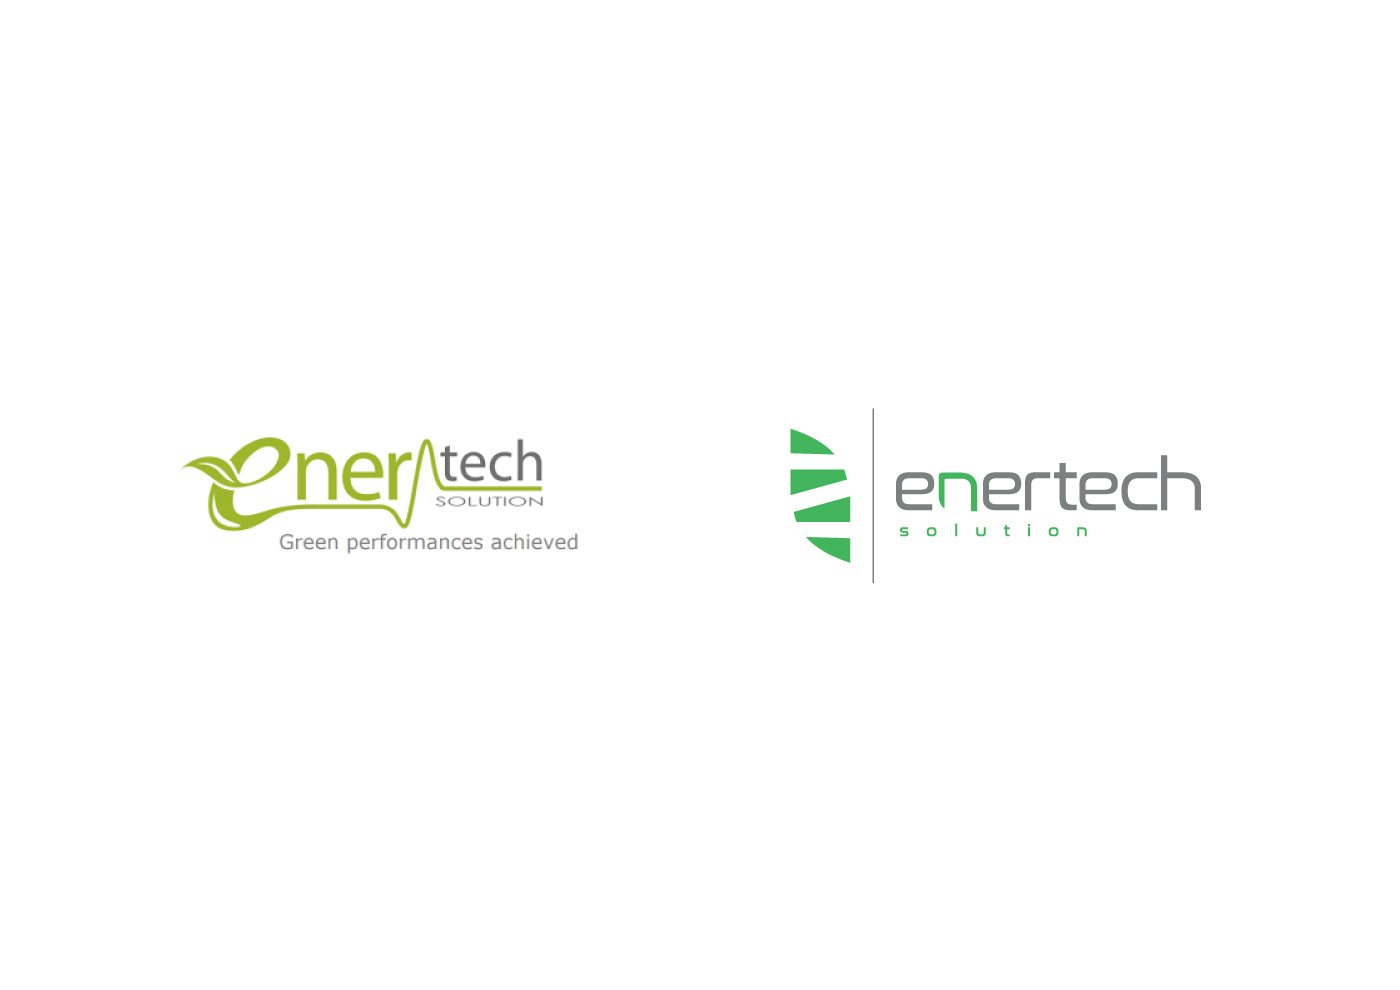 enertech-solution-restyling.jpg